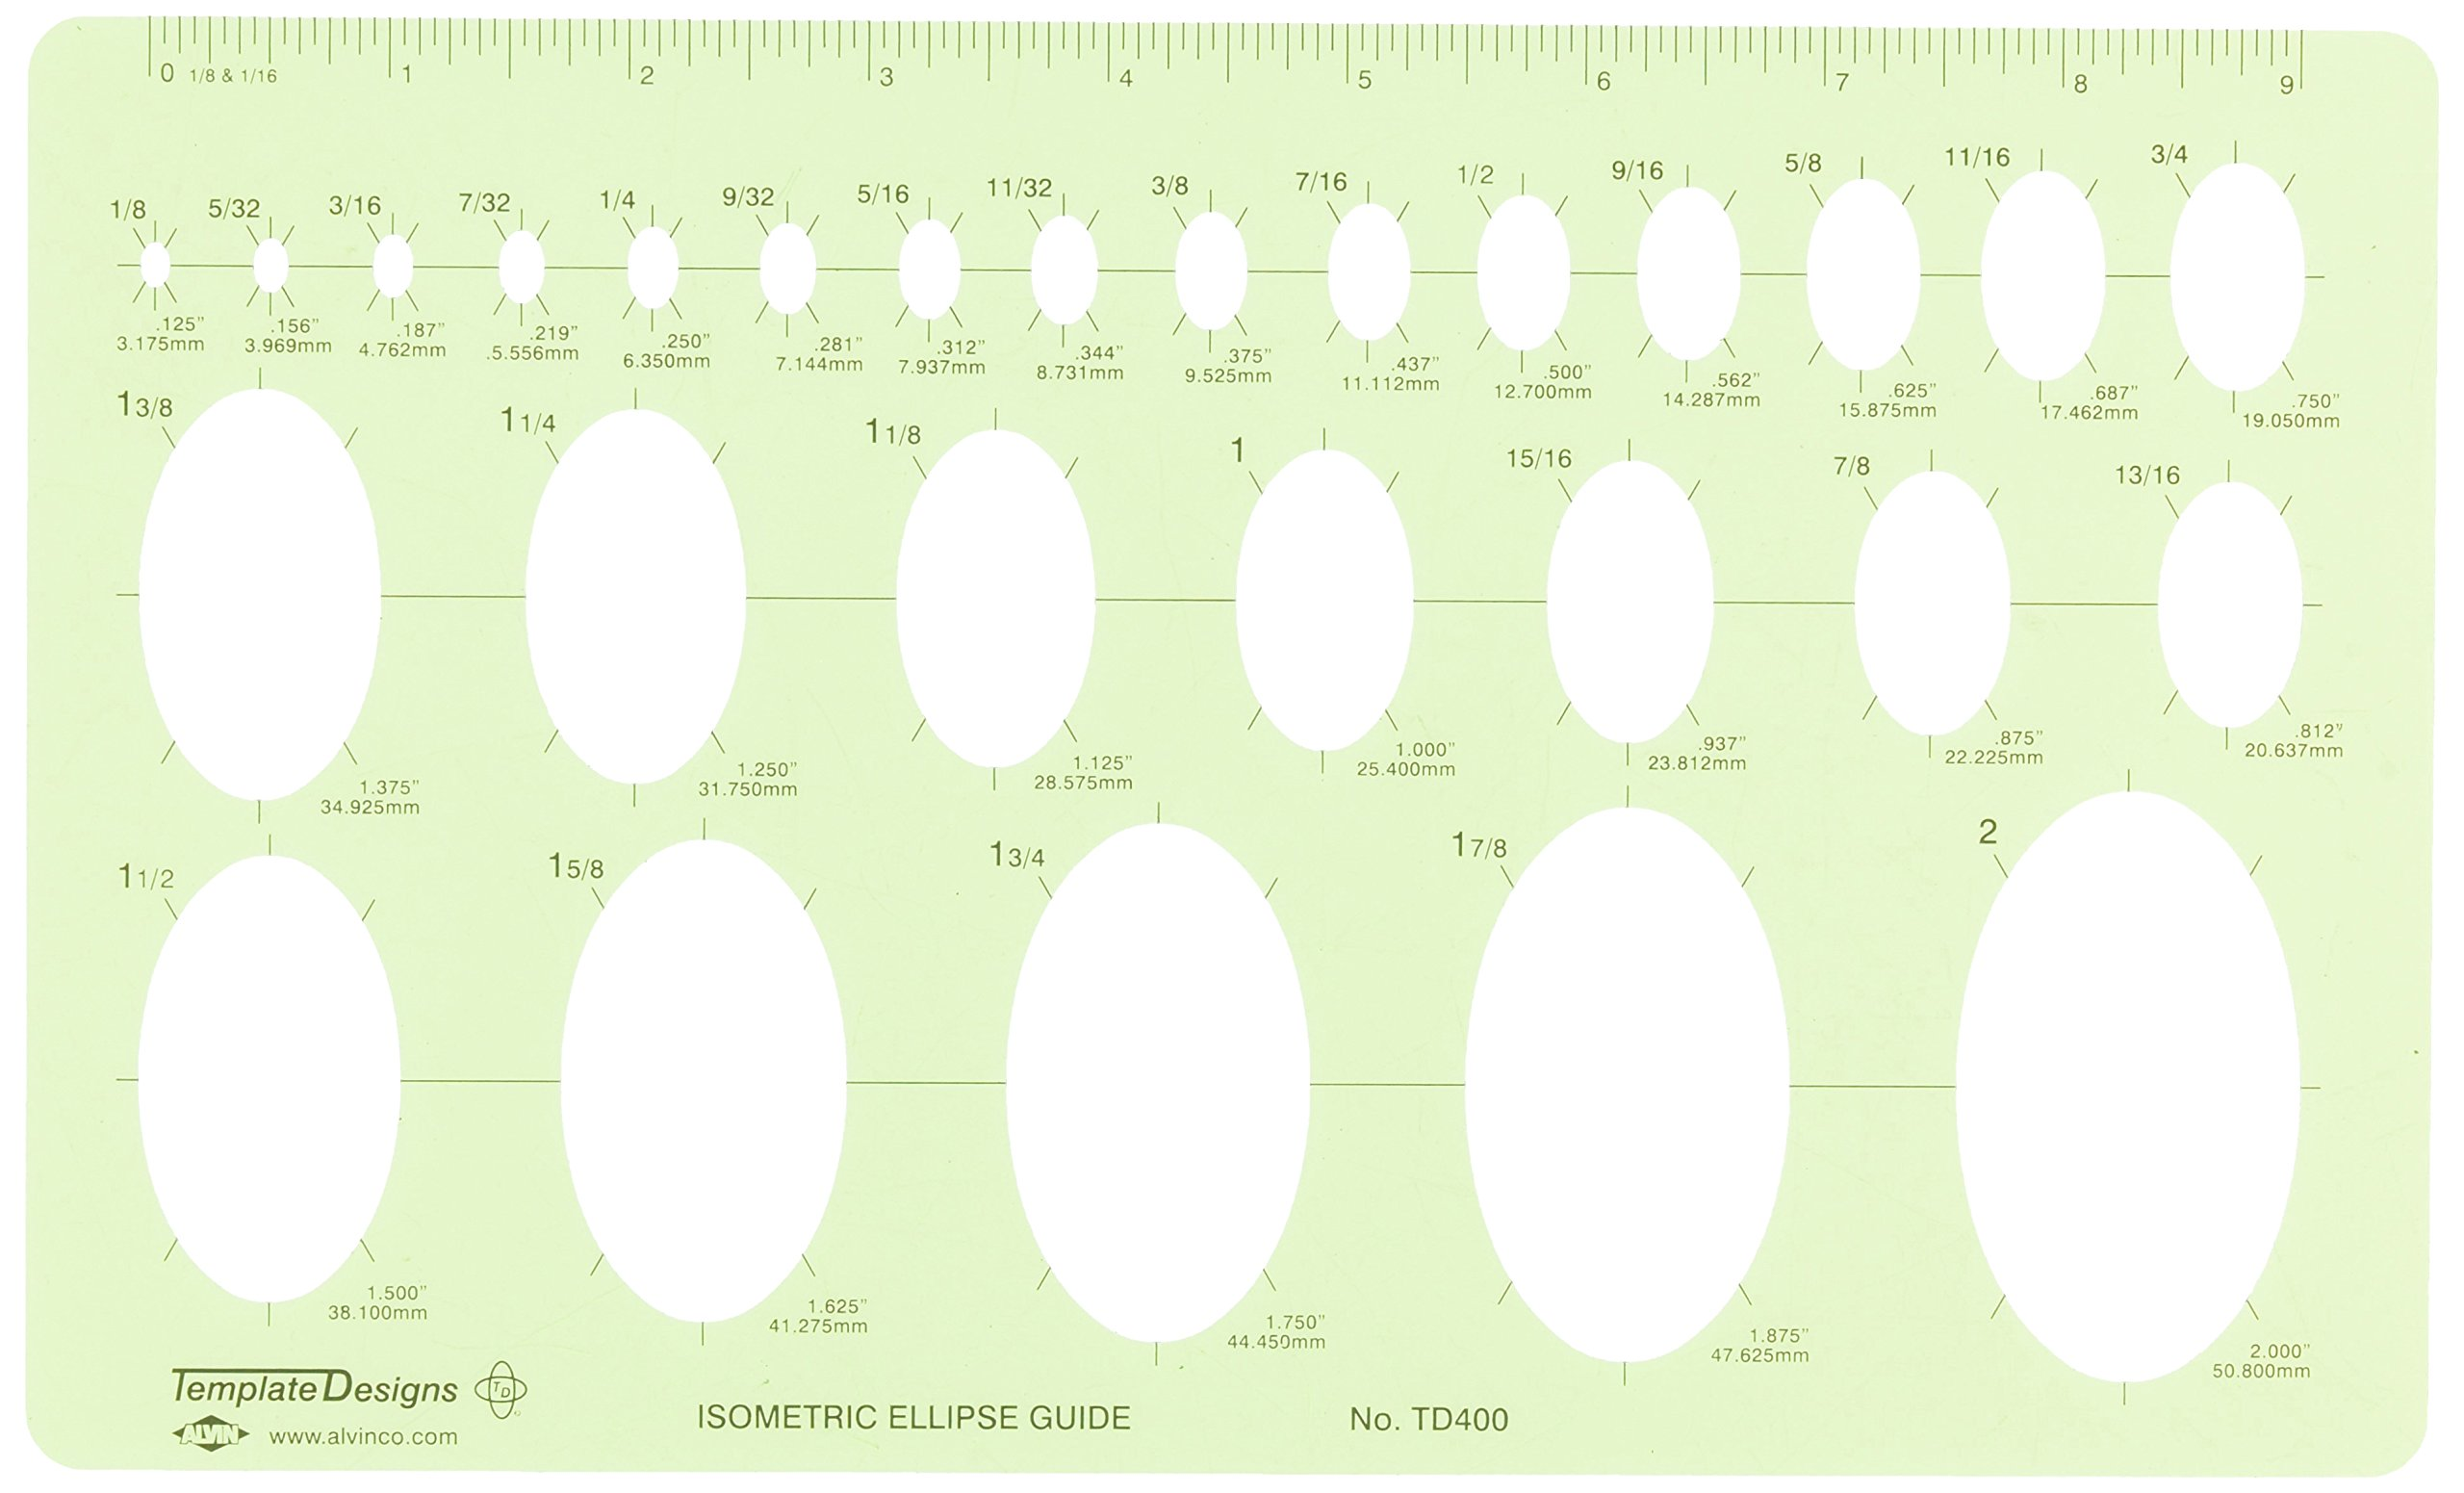 Alvin Isometric Ellipse Guide Template (TD400) product image